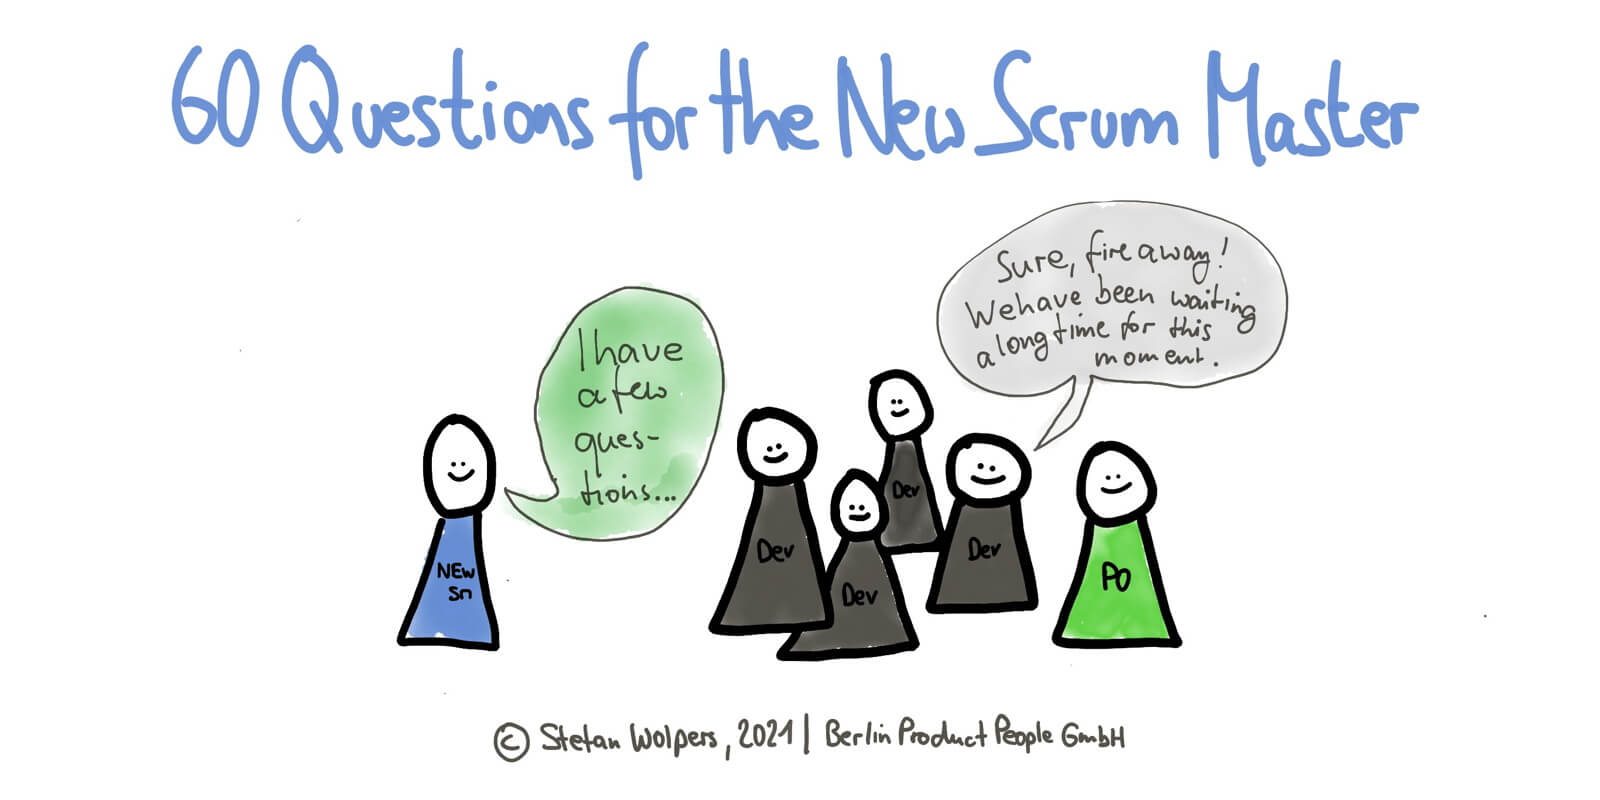 60 Questions for the New Scrum Master — Take them to the Team!